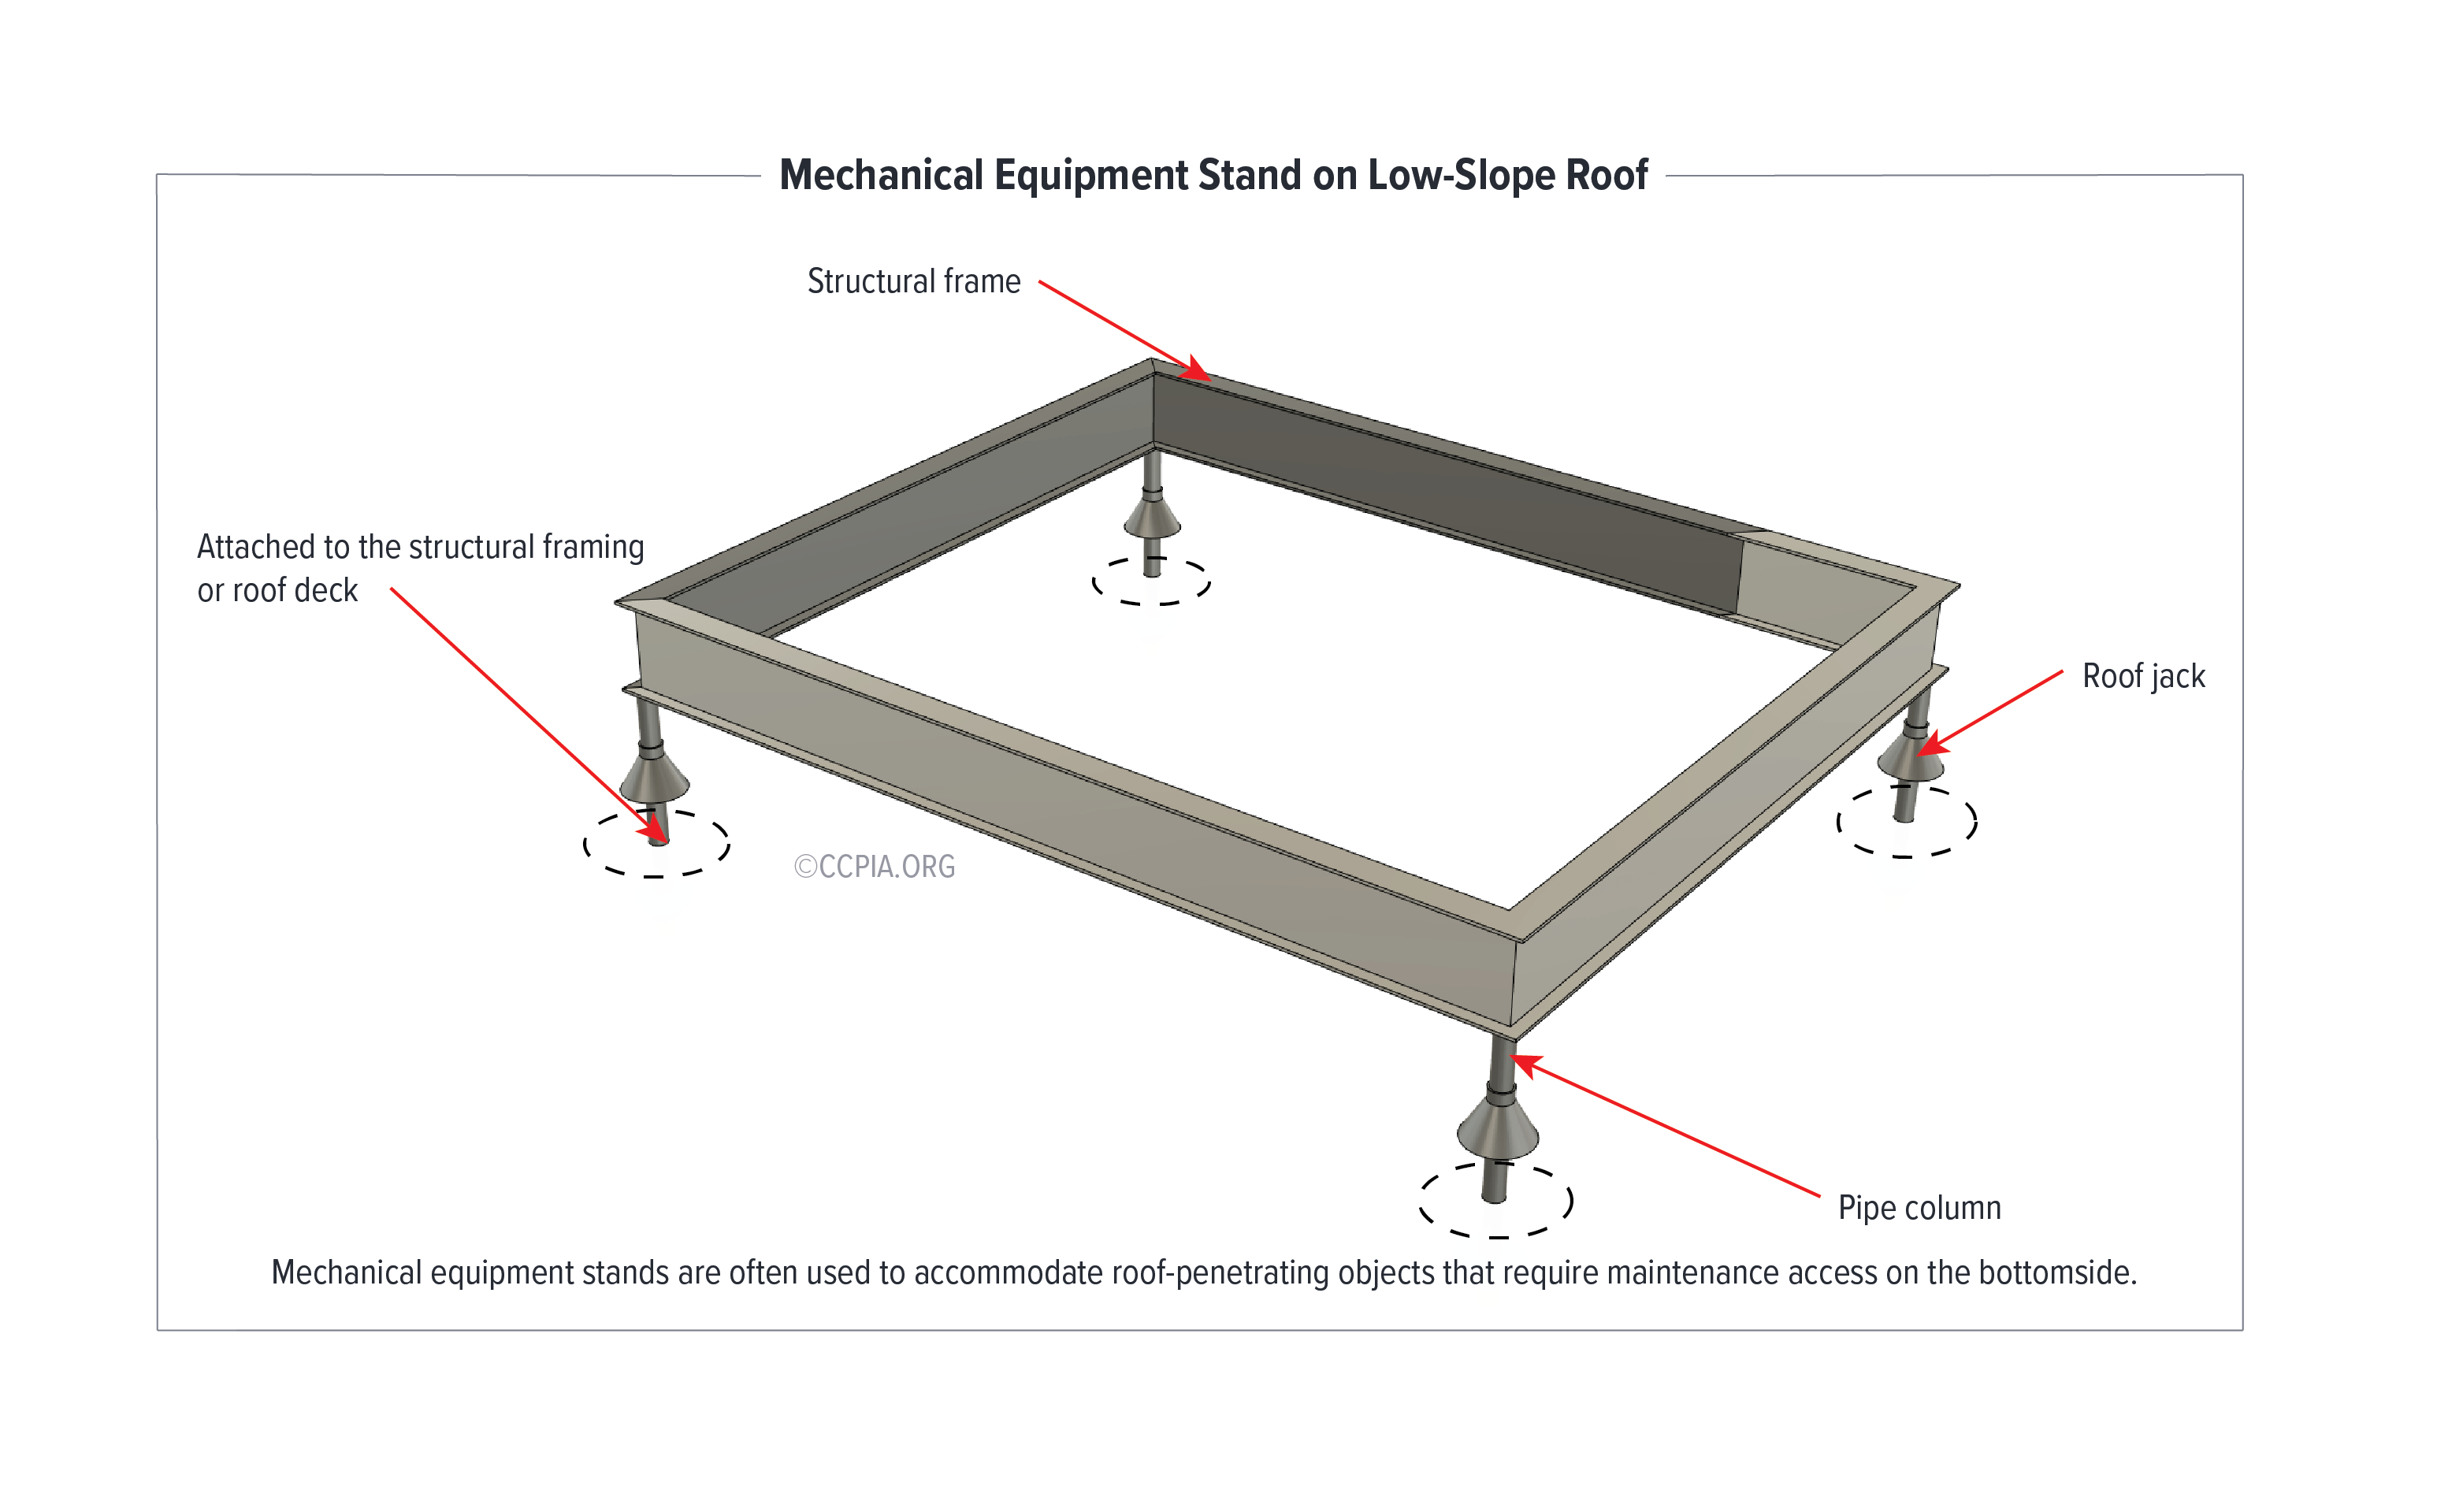 Mechanical equipment stands are often used to accommodate roof-penetrating objects that require maintenance access on the bottomside.